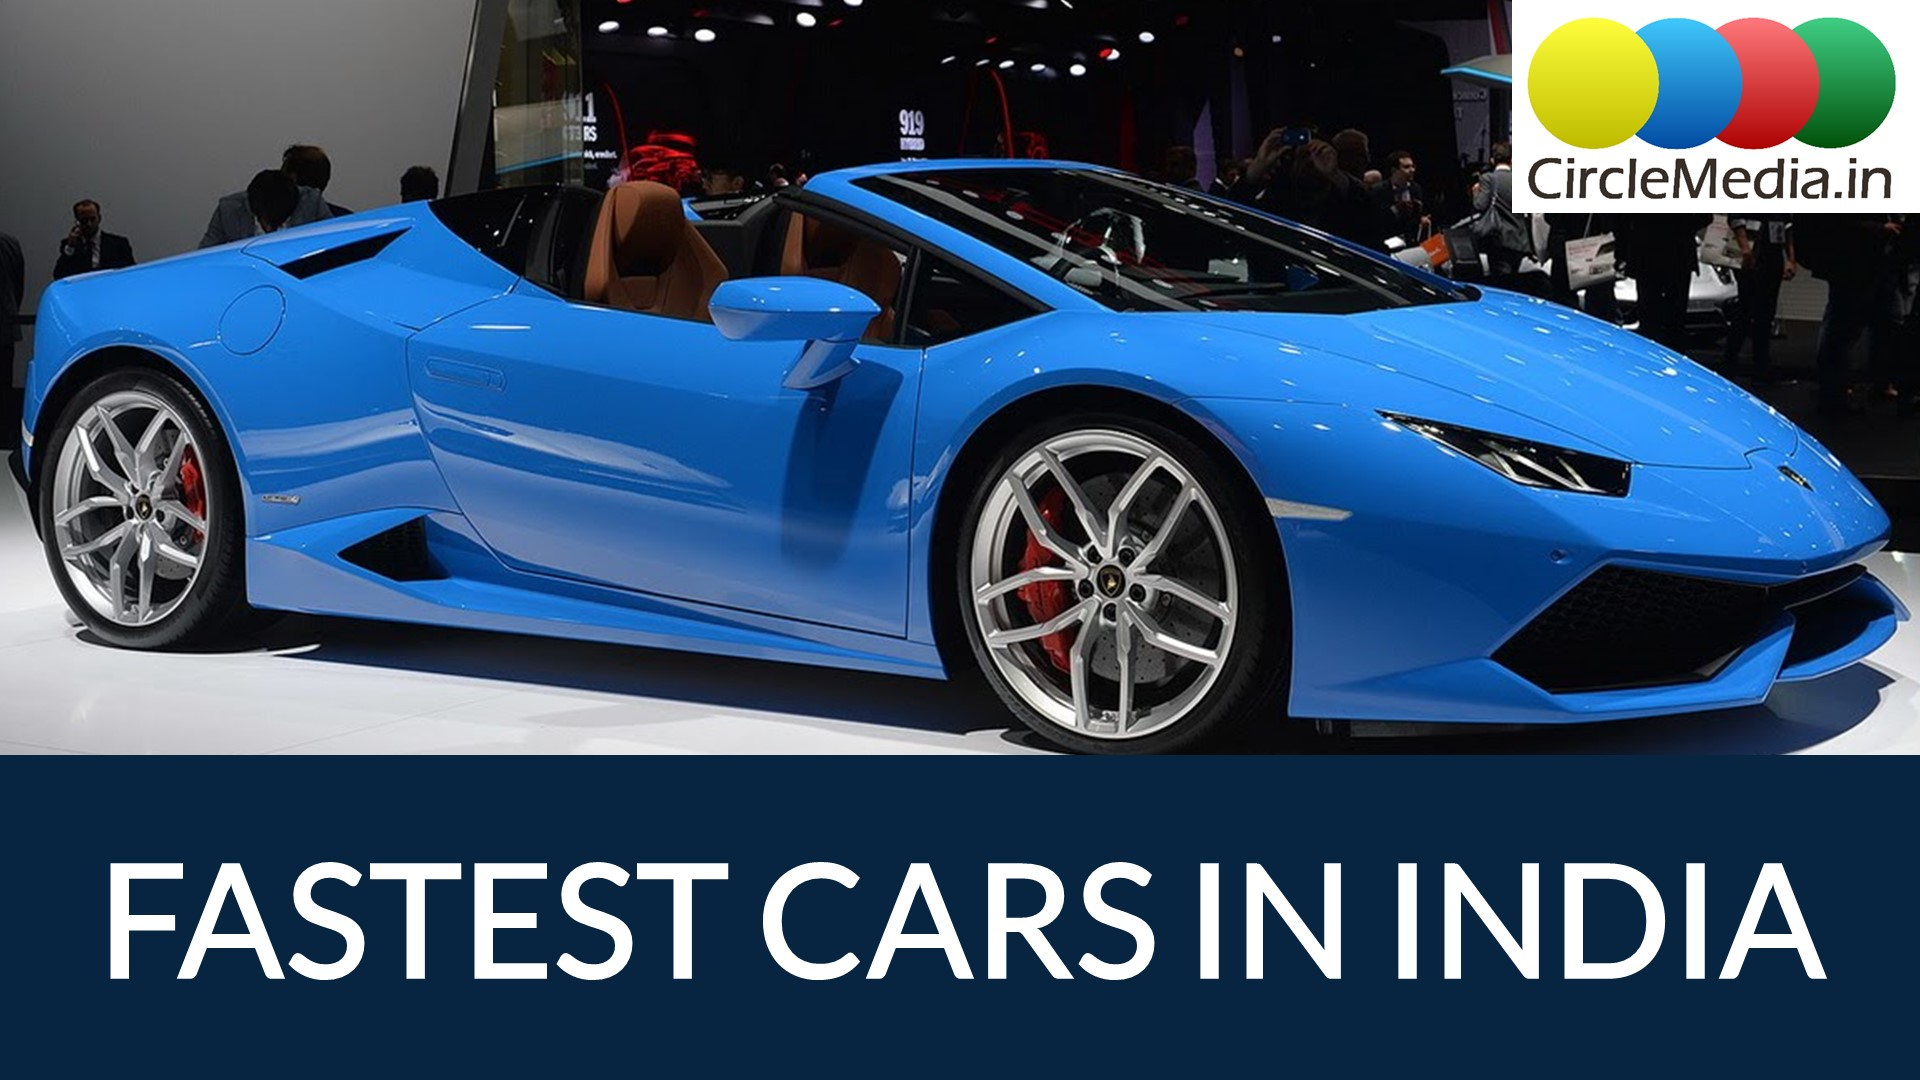 Top 10 Fastest Cars in India | List of sports cars and their top speeds | CircleMedia.in